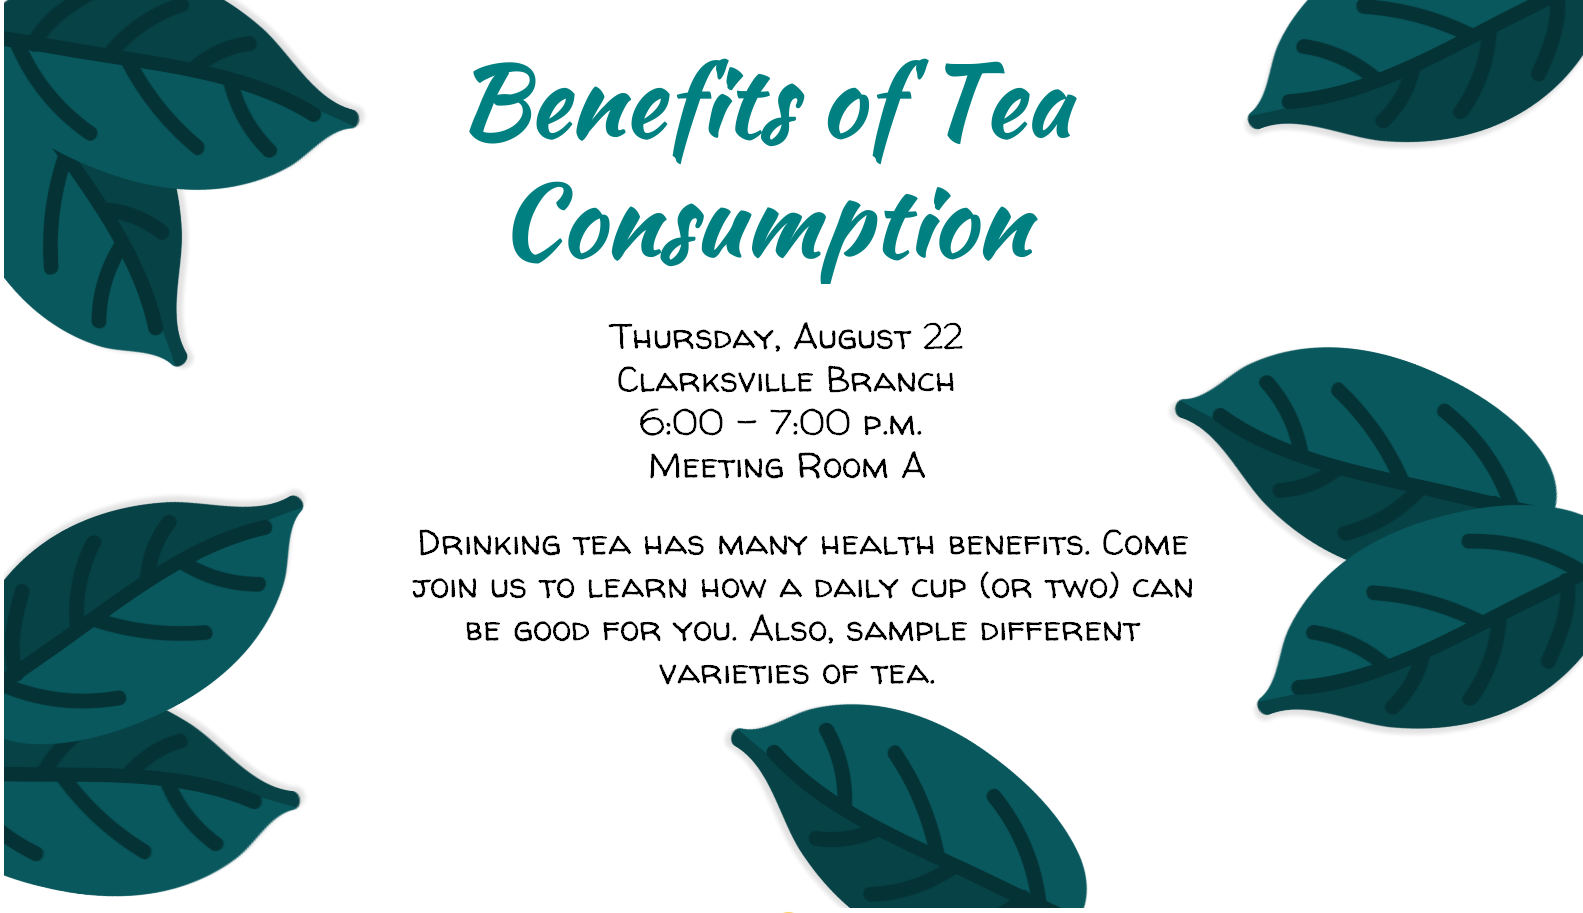 Flyer for program on the Benefits of Tea Consumption to be held on August 22nd, 2019